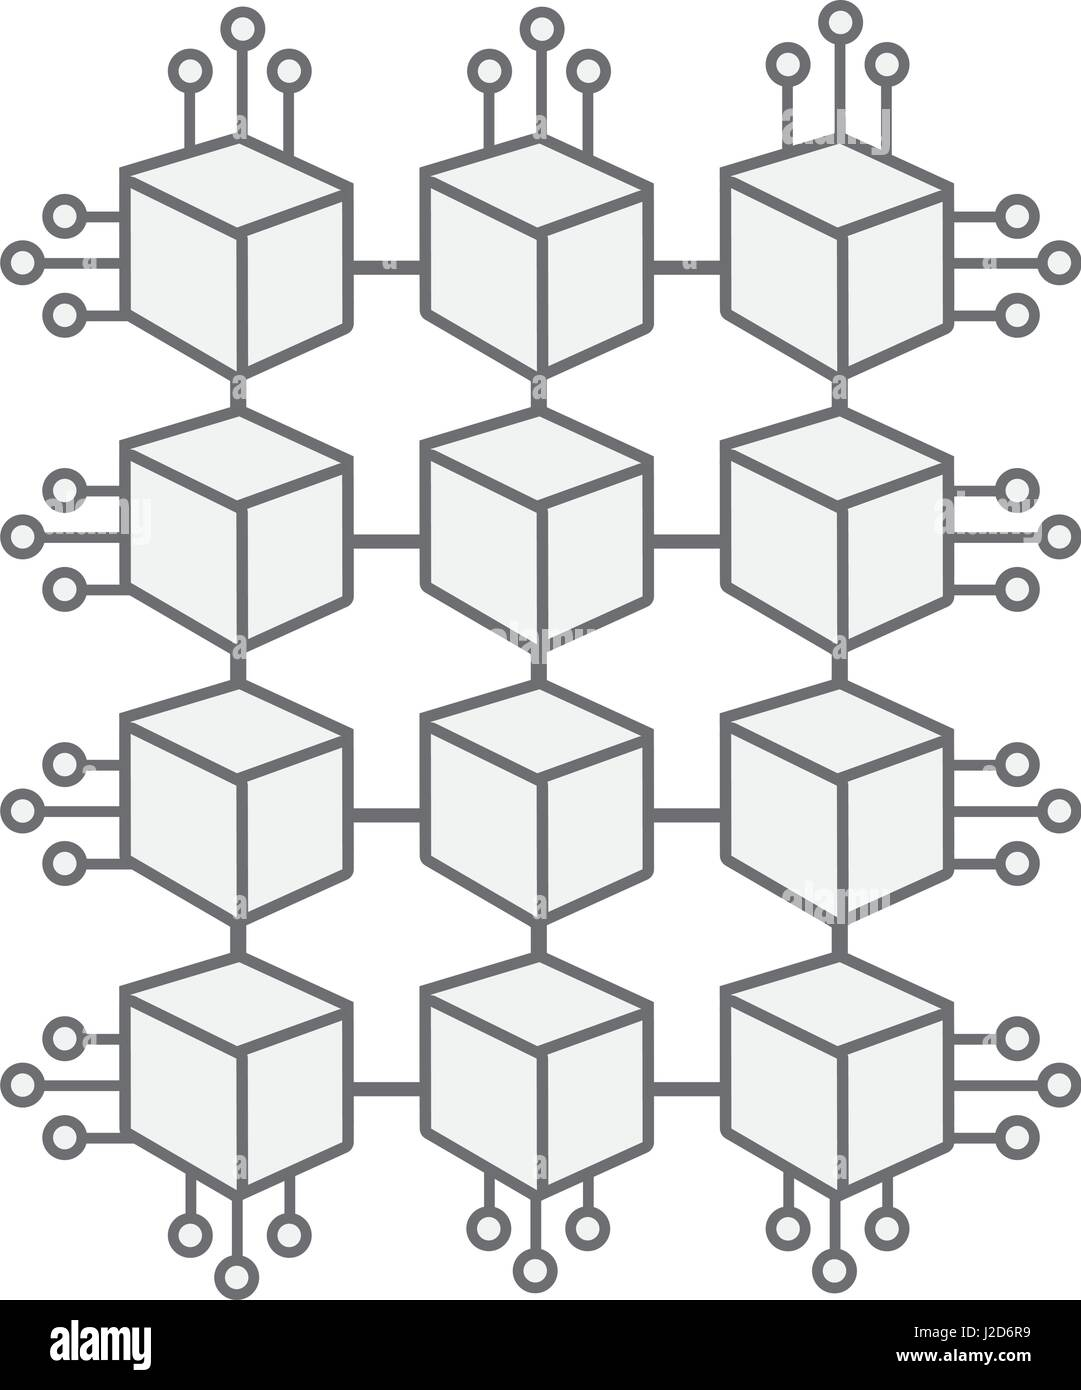 cube with circuits network of communicatig bitcoin transactions - Stock Image